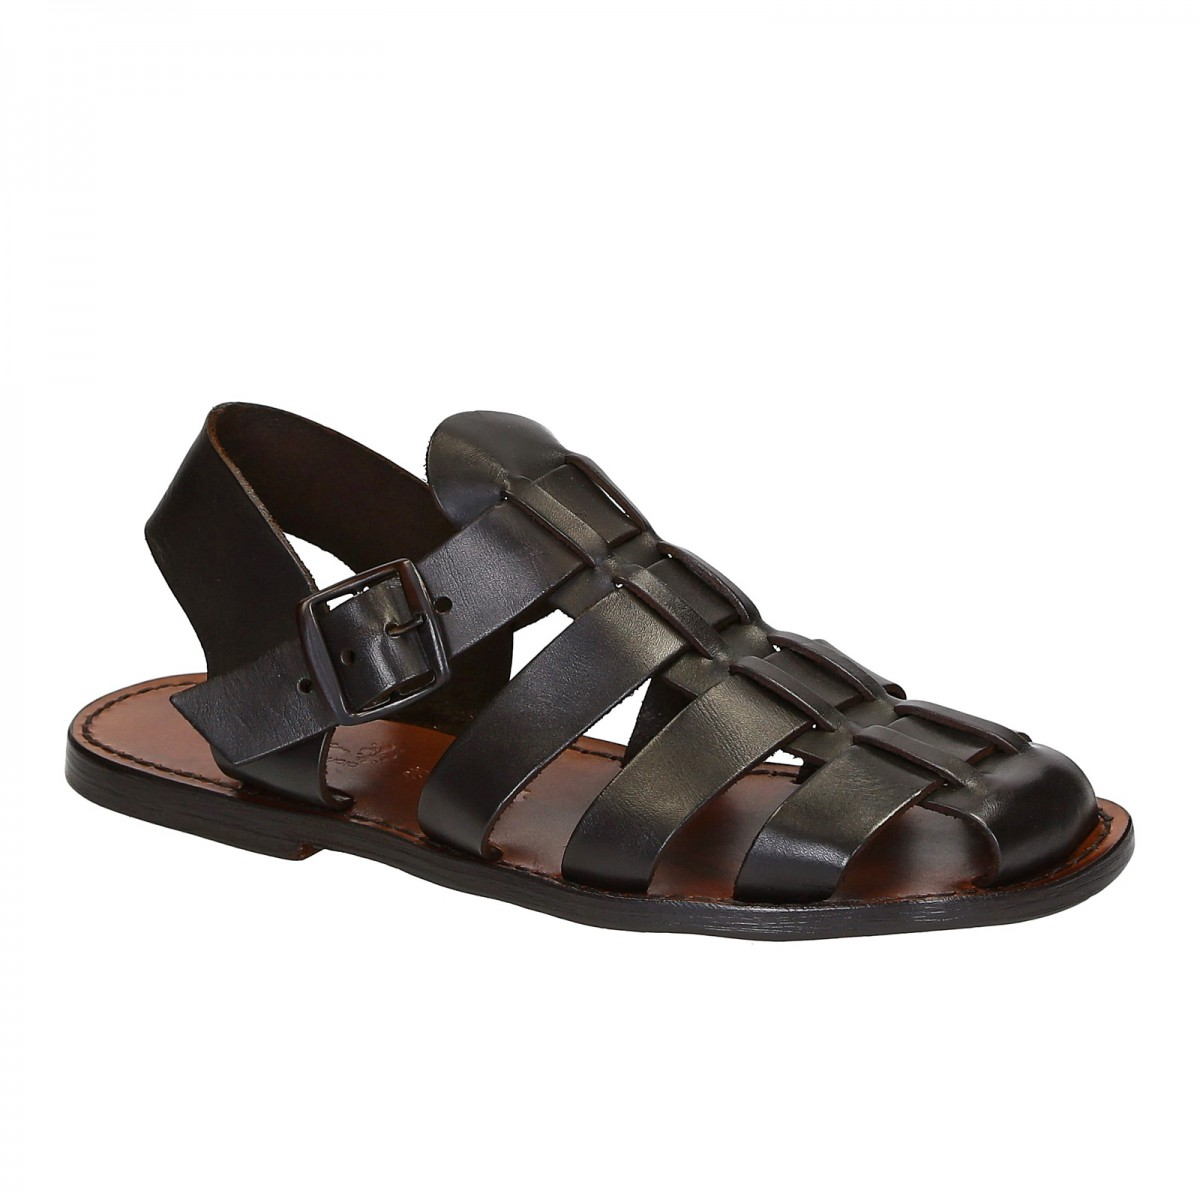 c3e91b6cf577 Handmade in Italy mens Franciscan sandals in dark brown leather. Loading  zoom